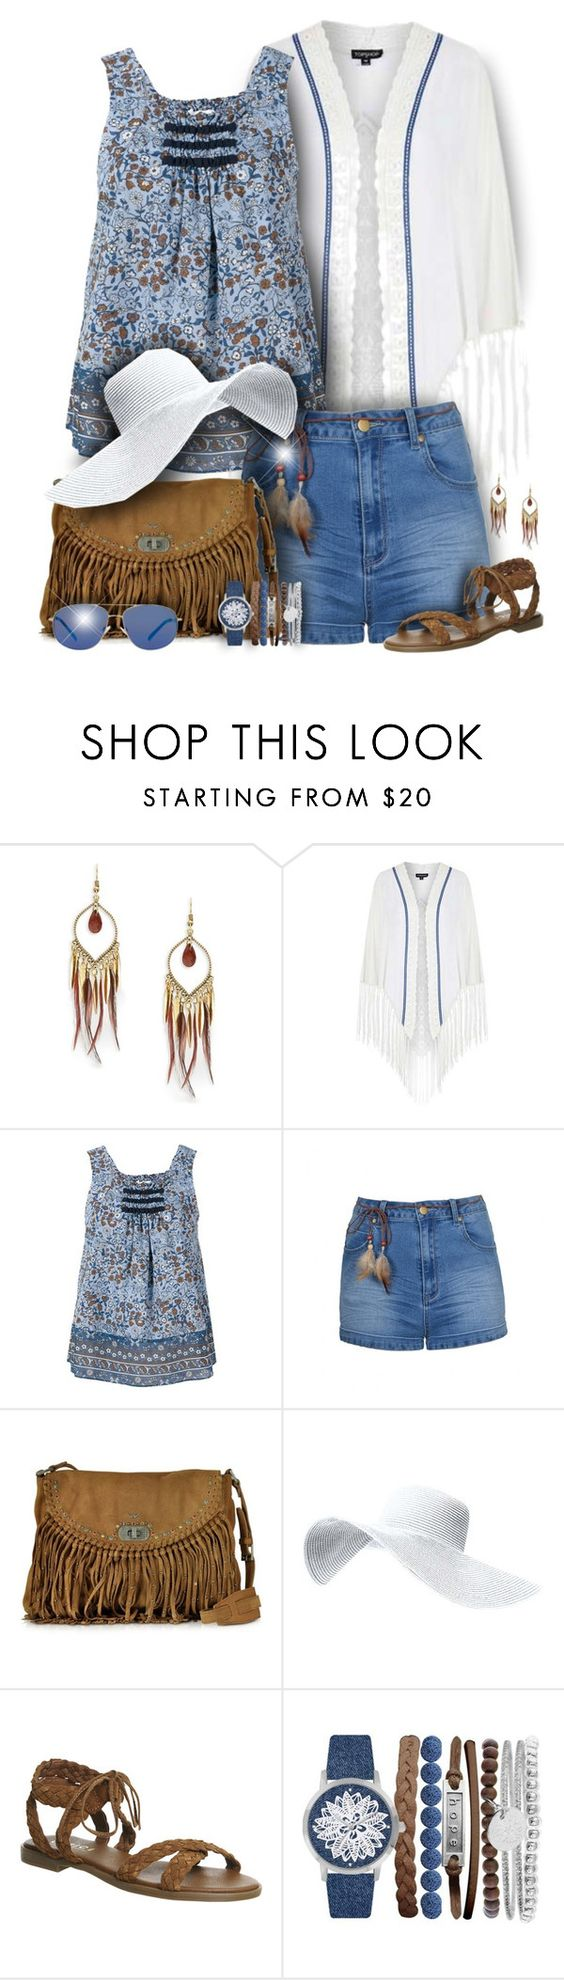 """""""Boho Kimono & Shorts Outfit"""" by helenehrenhofer ❤ liked on Polyvore featuring Design Lab, Topshop, See by Chloé, Ally Fashion, Zadig & Voltaire, Office, Jessica Carlyle and MANGO"""